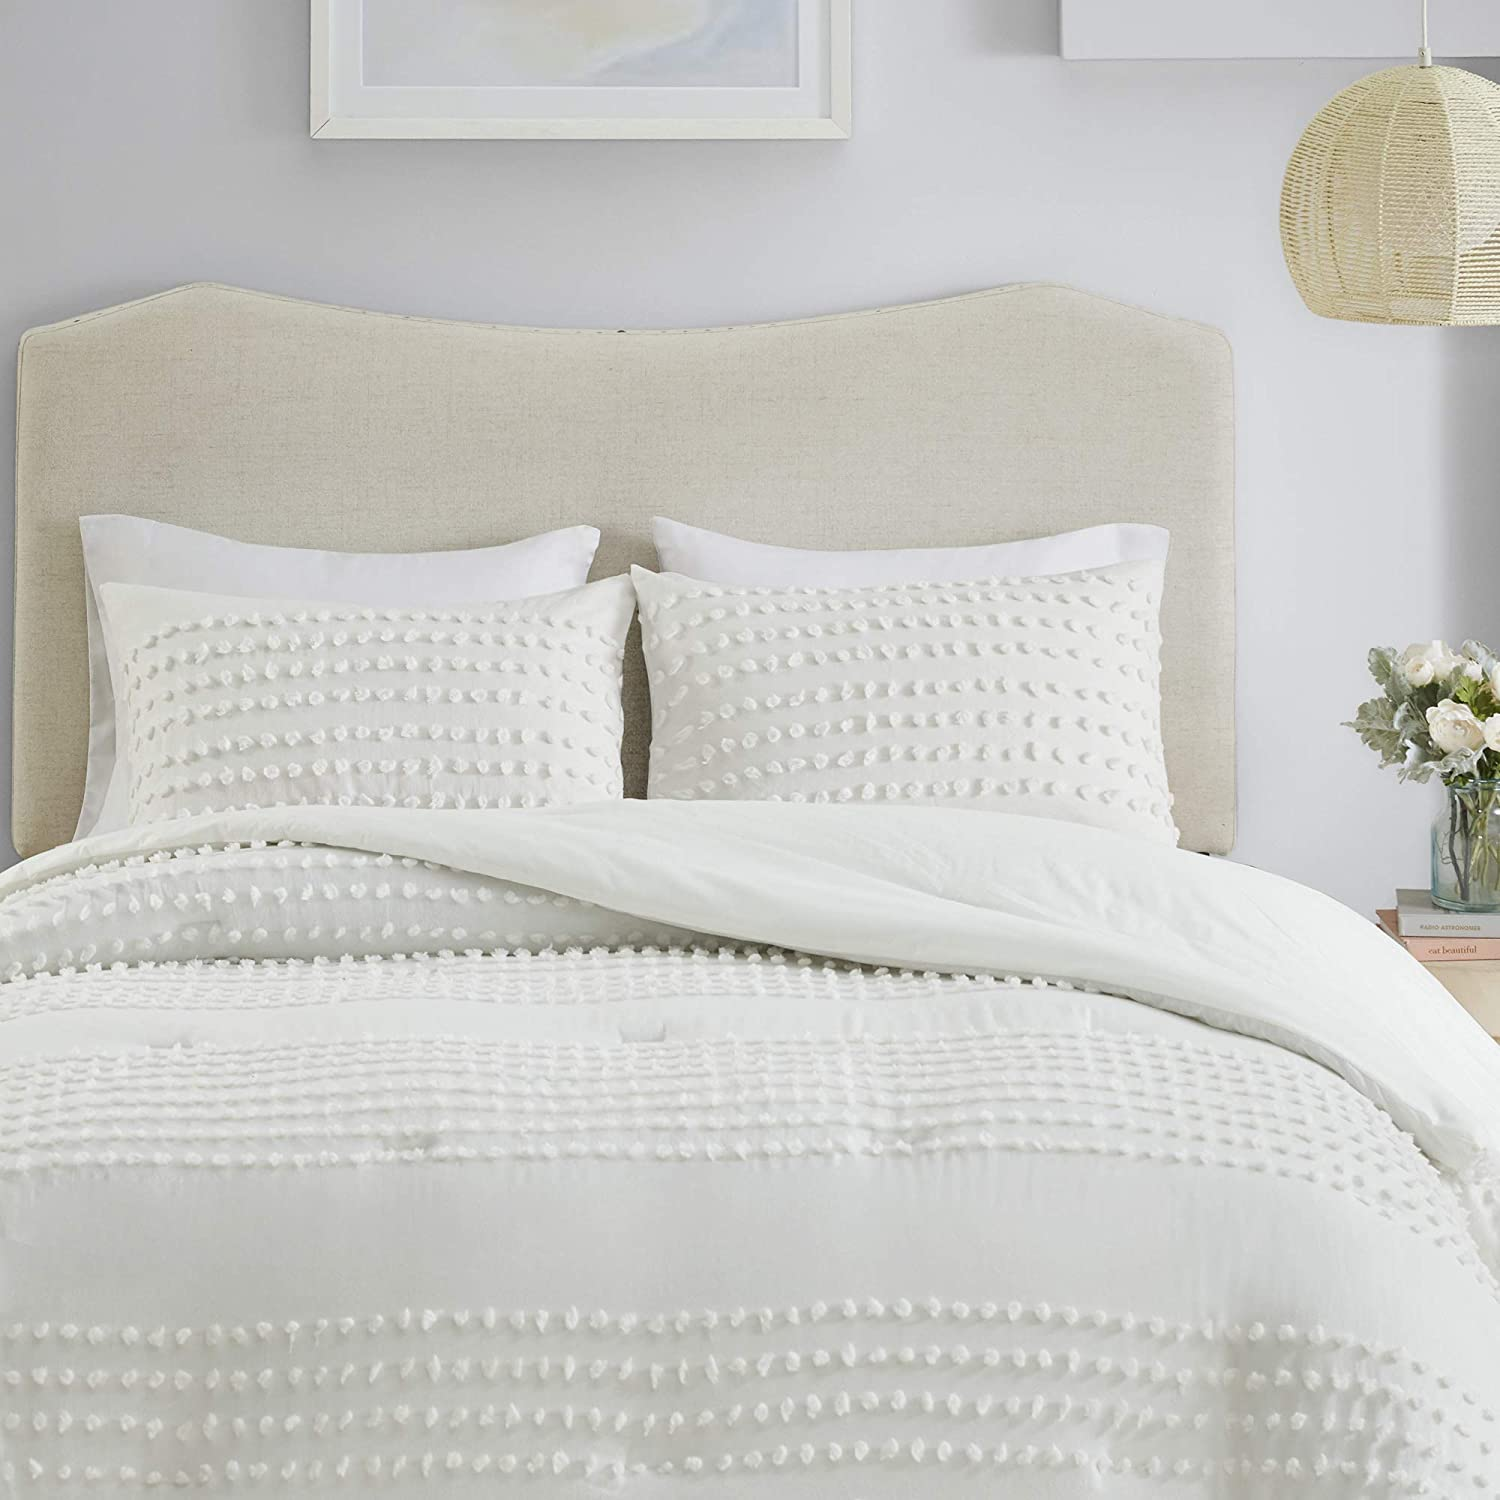 Comfort Spaces Phillips Comforter Reversible 100% Cotton Face Jacquard Tufted Chenille Dots Ultra-Soft Overfilled Down Alternative Hypoallergenic All Season Bedding-Set, Twin/Twin XL, Ivory